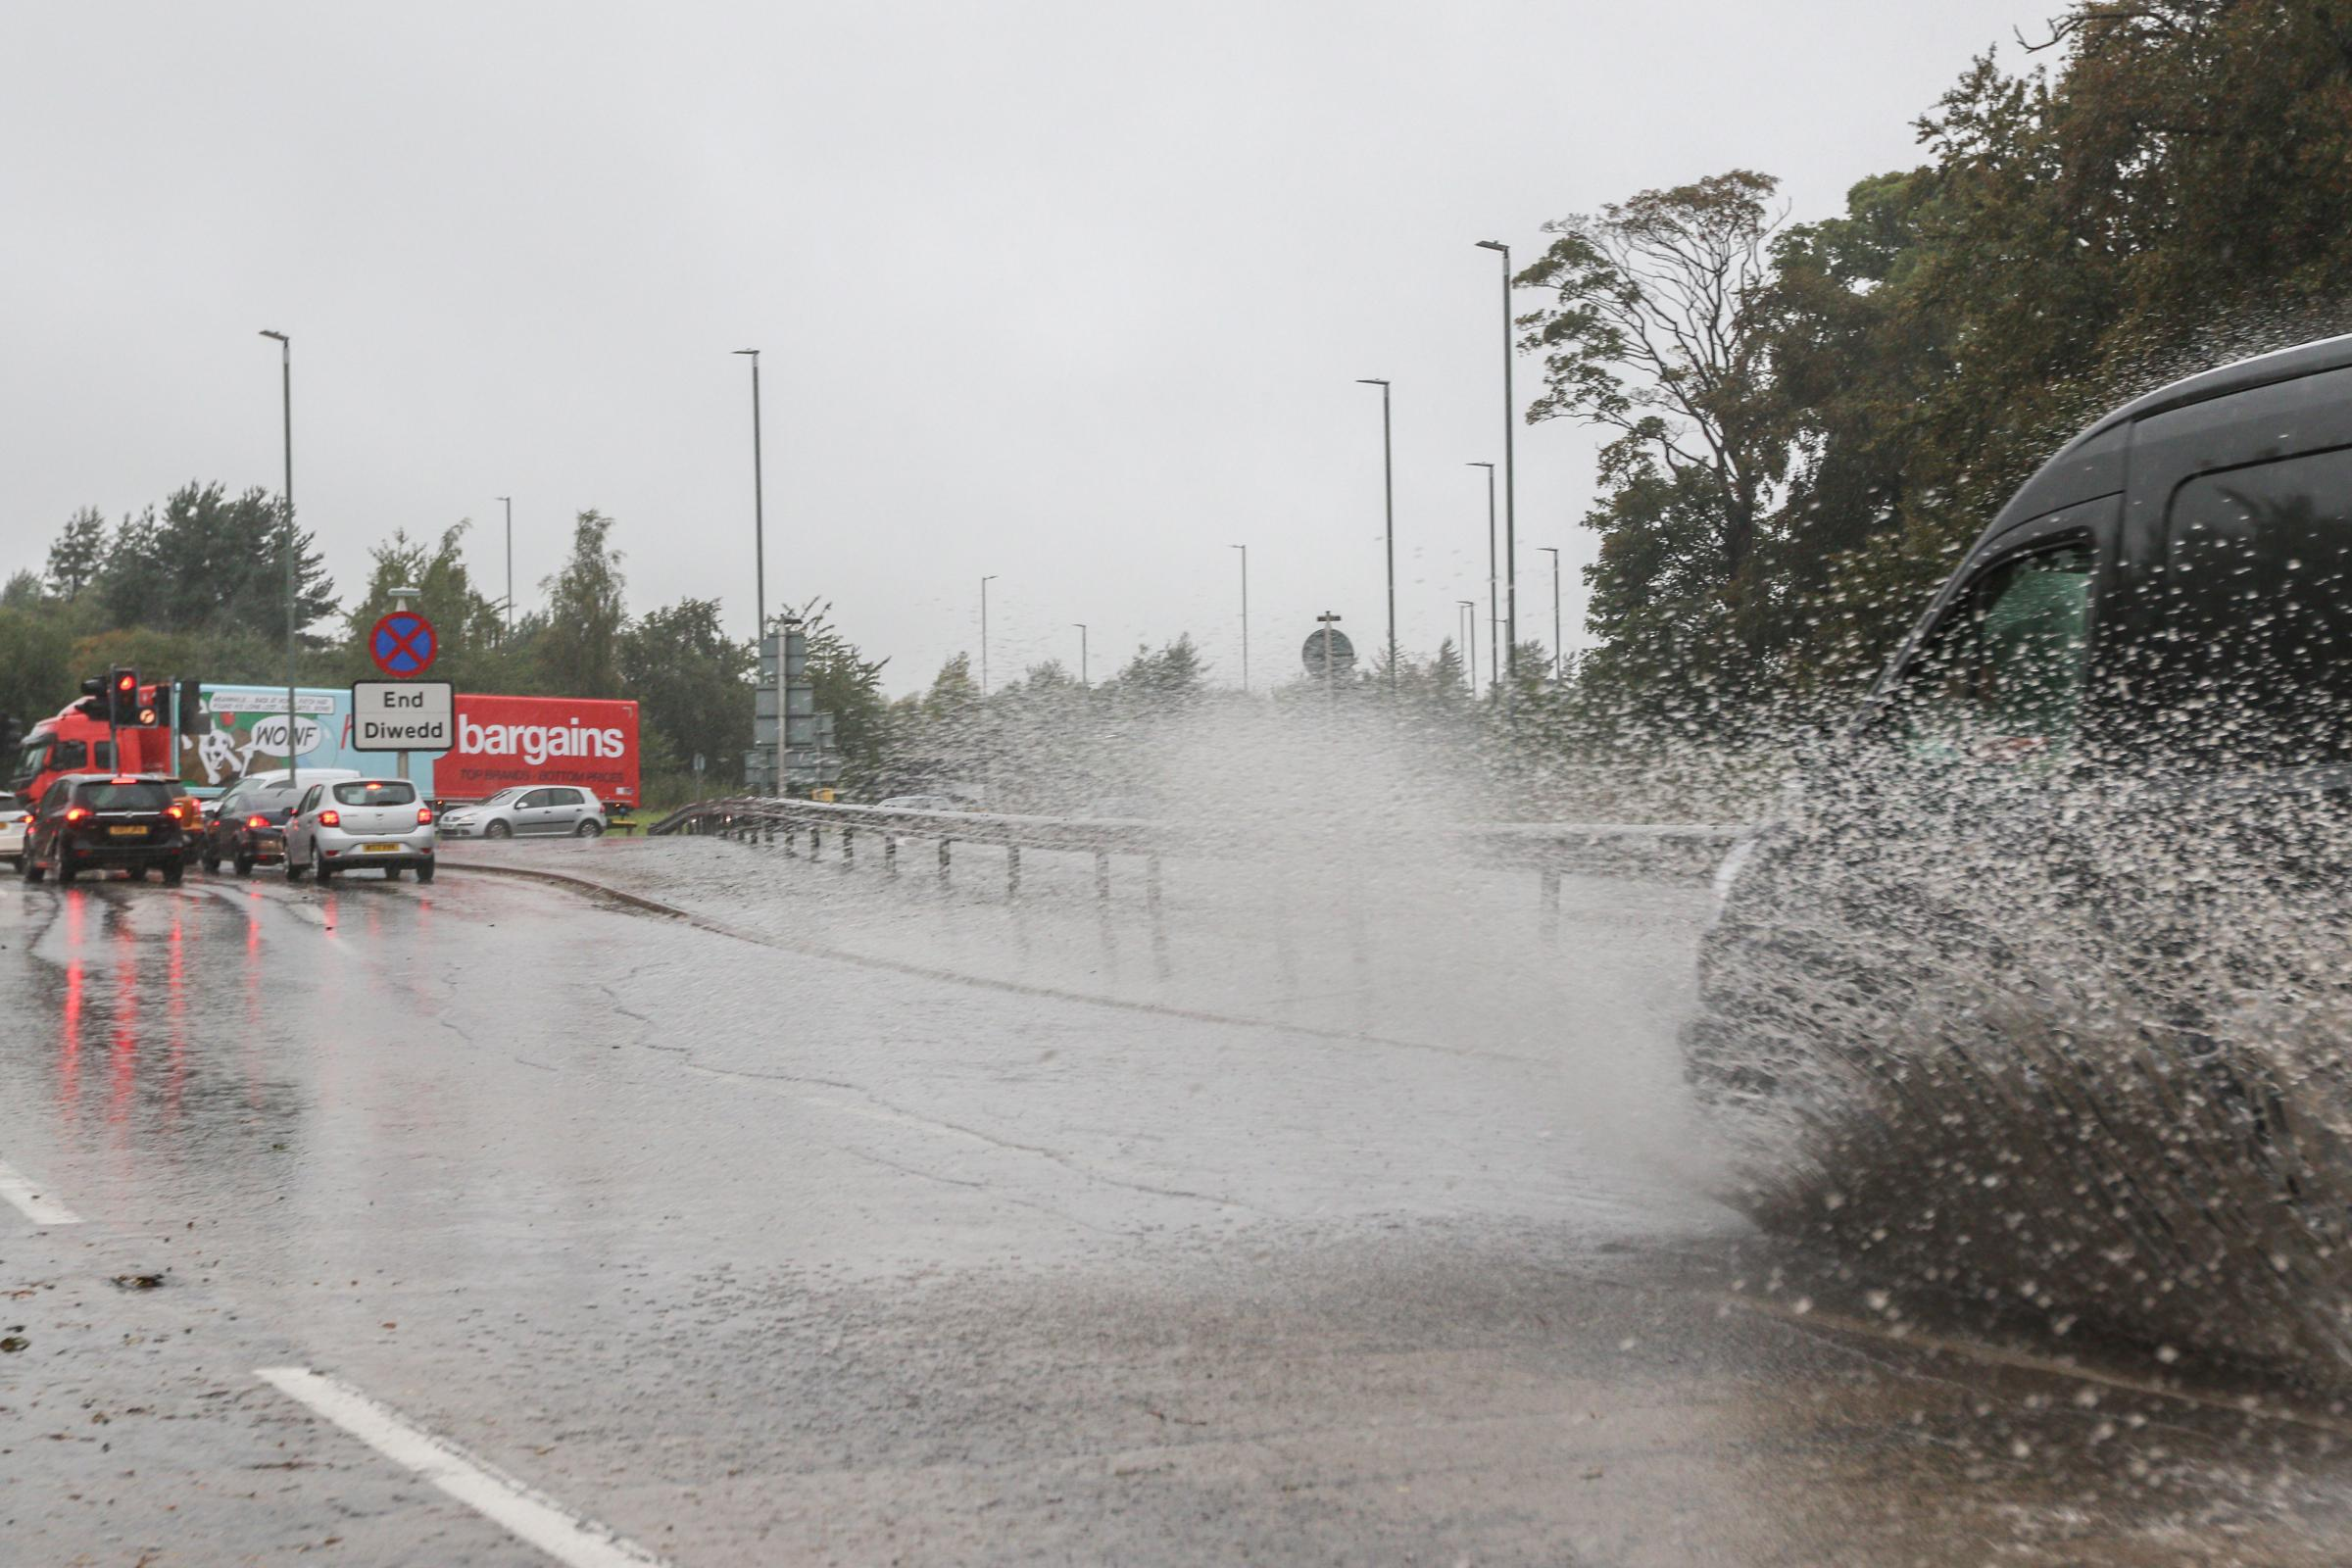 A5156 / A483 junction standing water making hazardous driving conditions